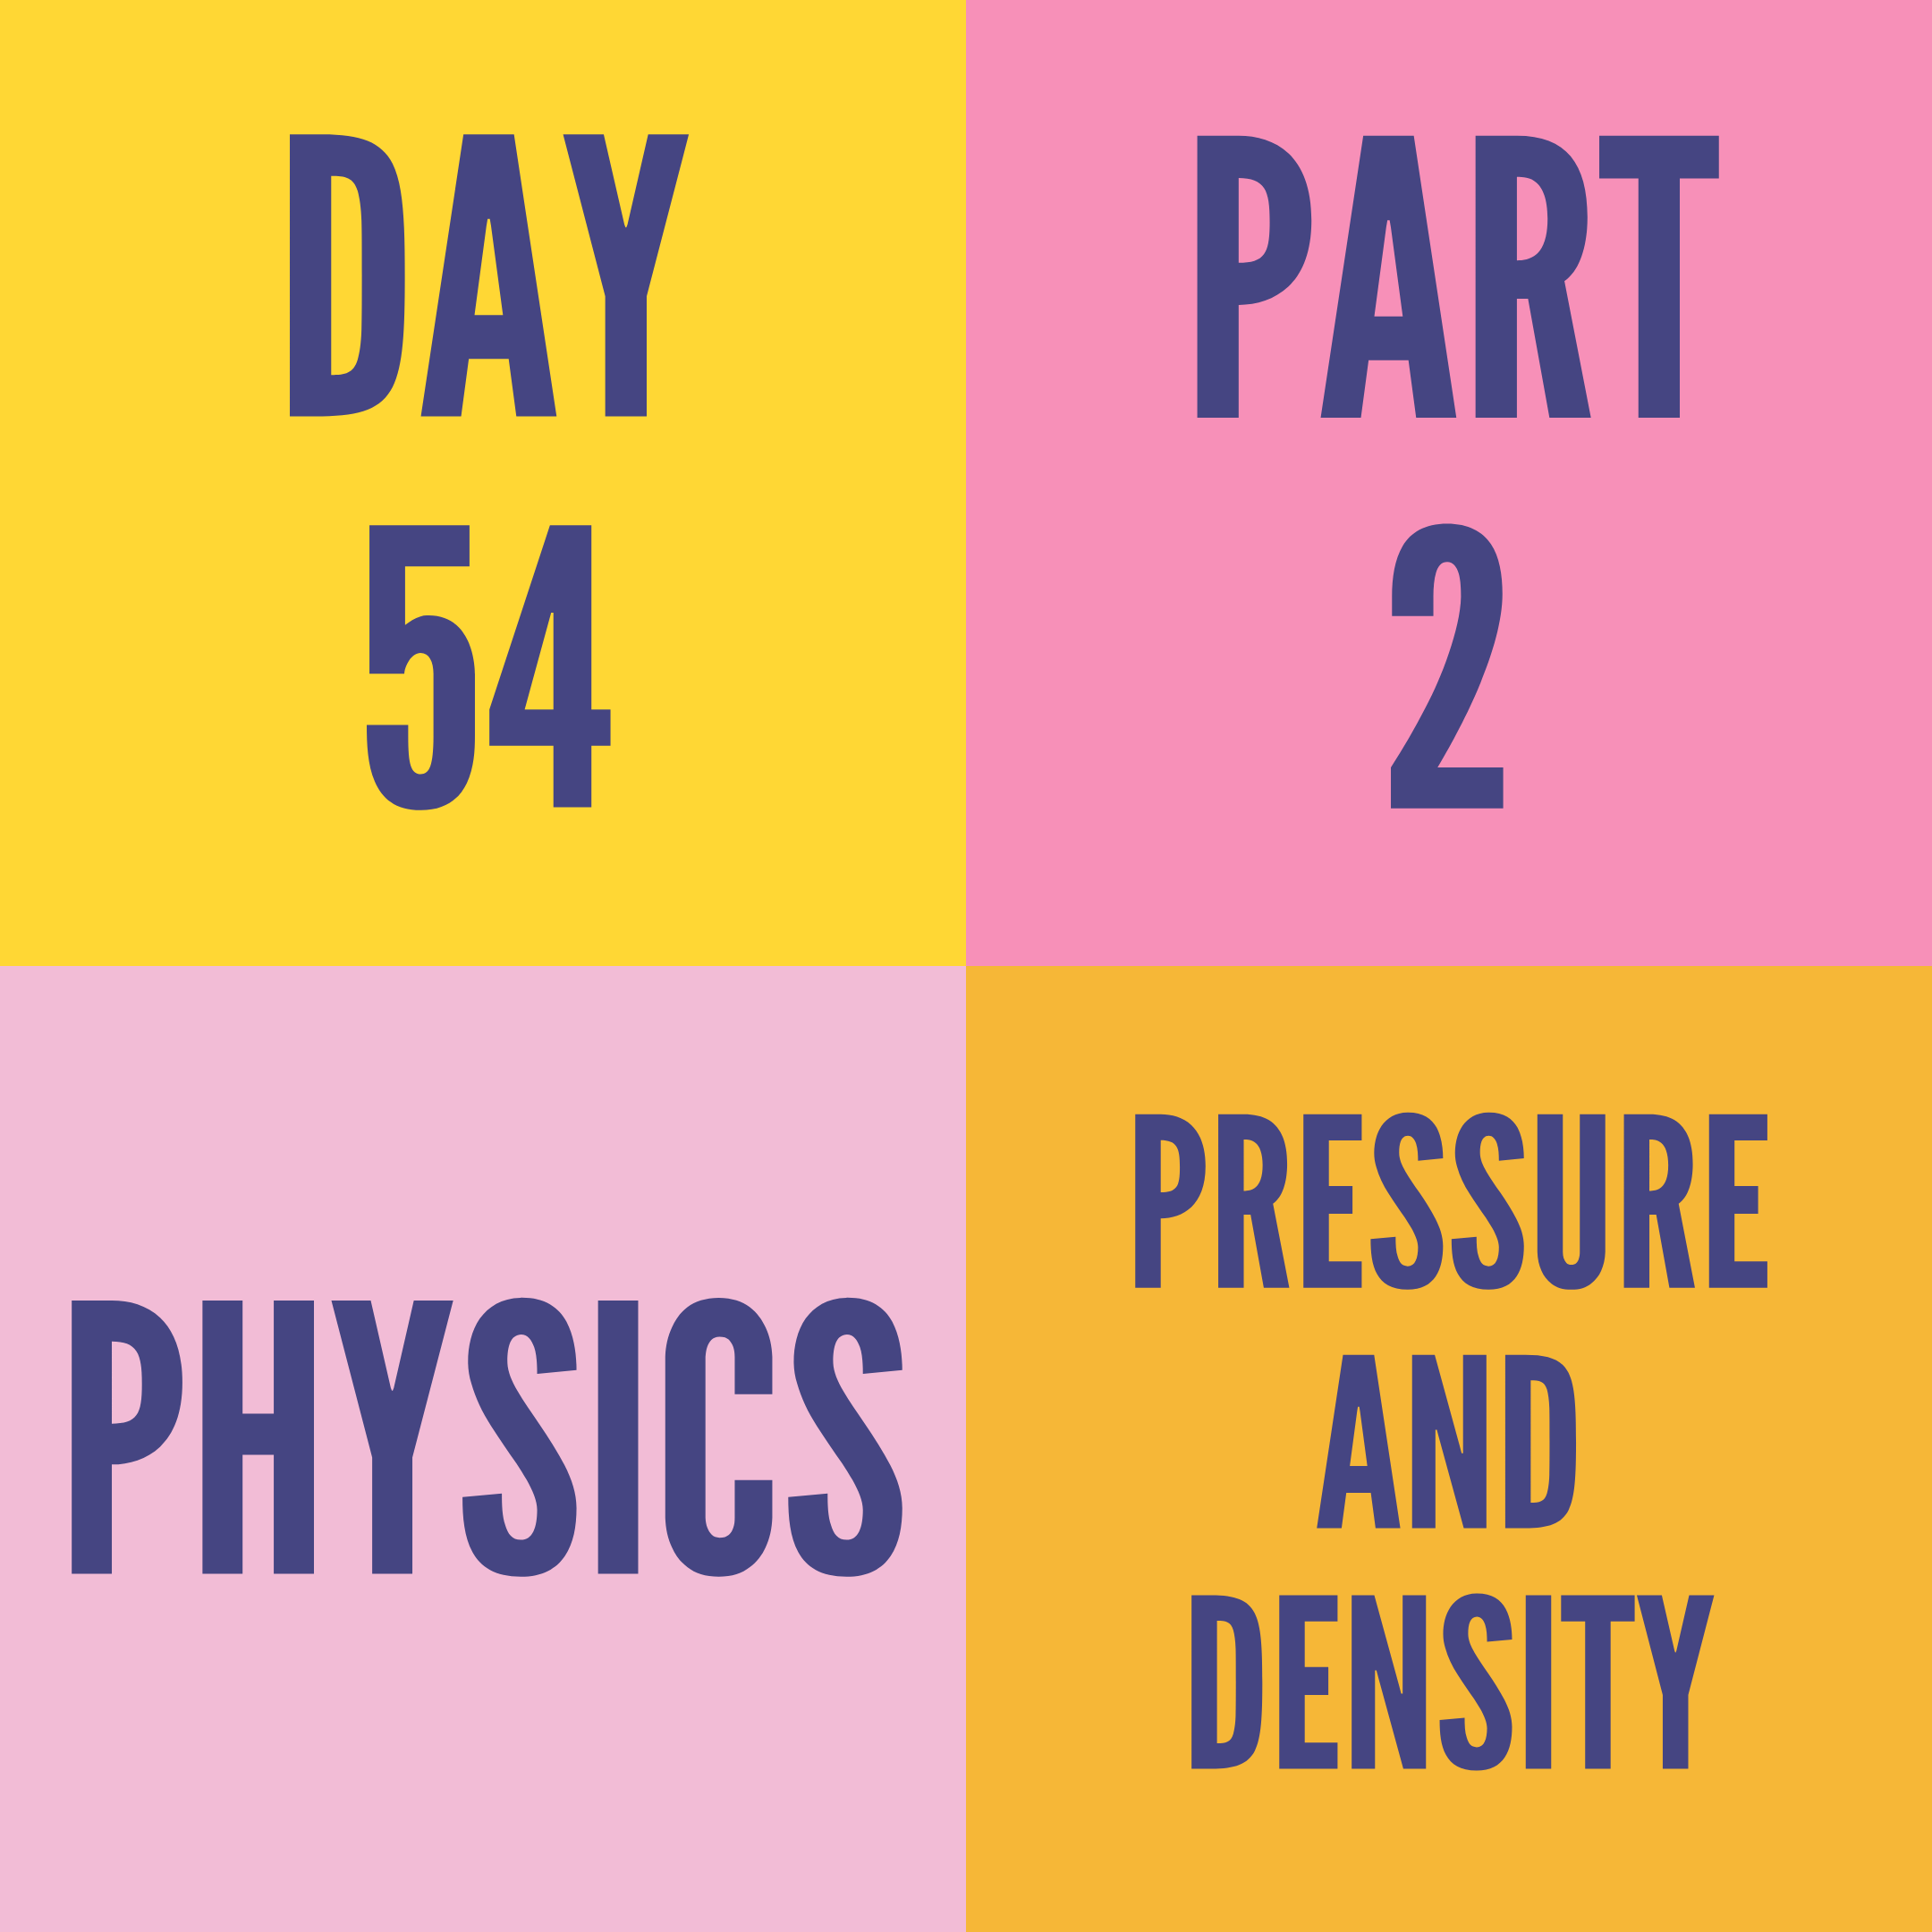 DAY-54 PART-2 PRESSURE AND DENSITY